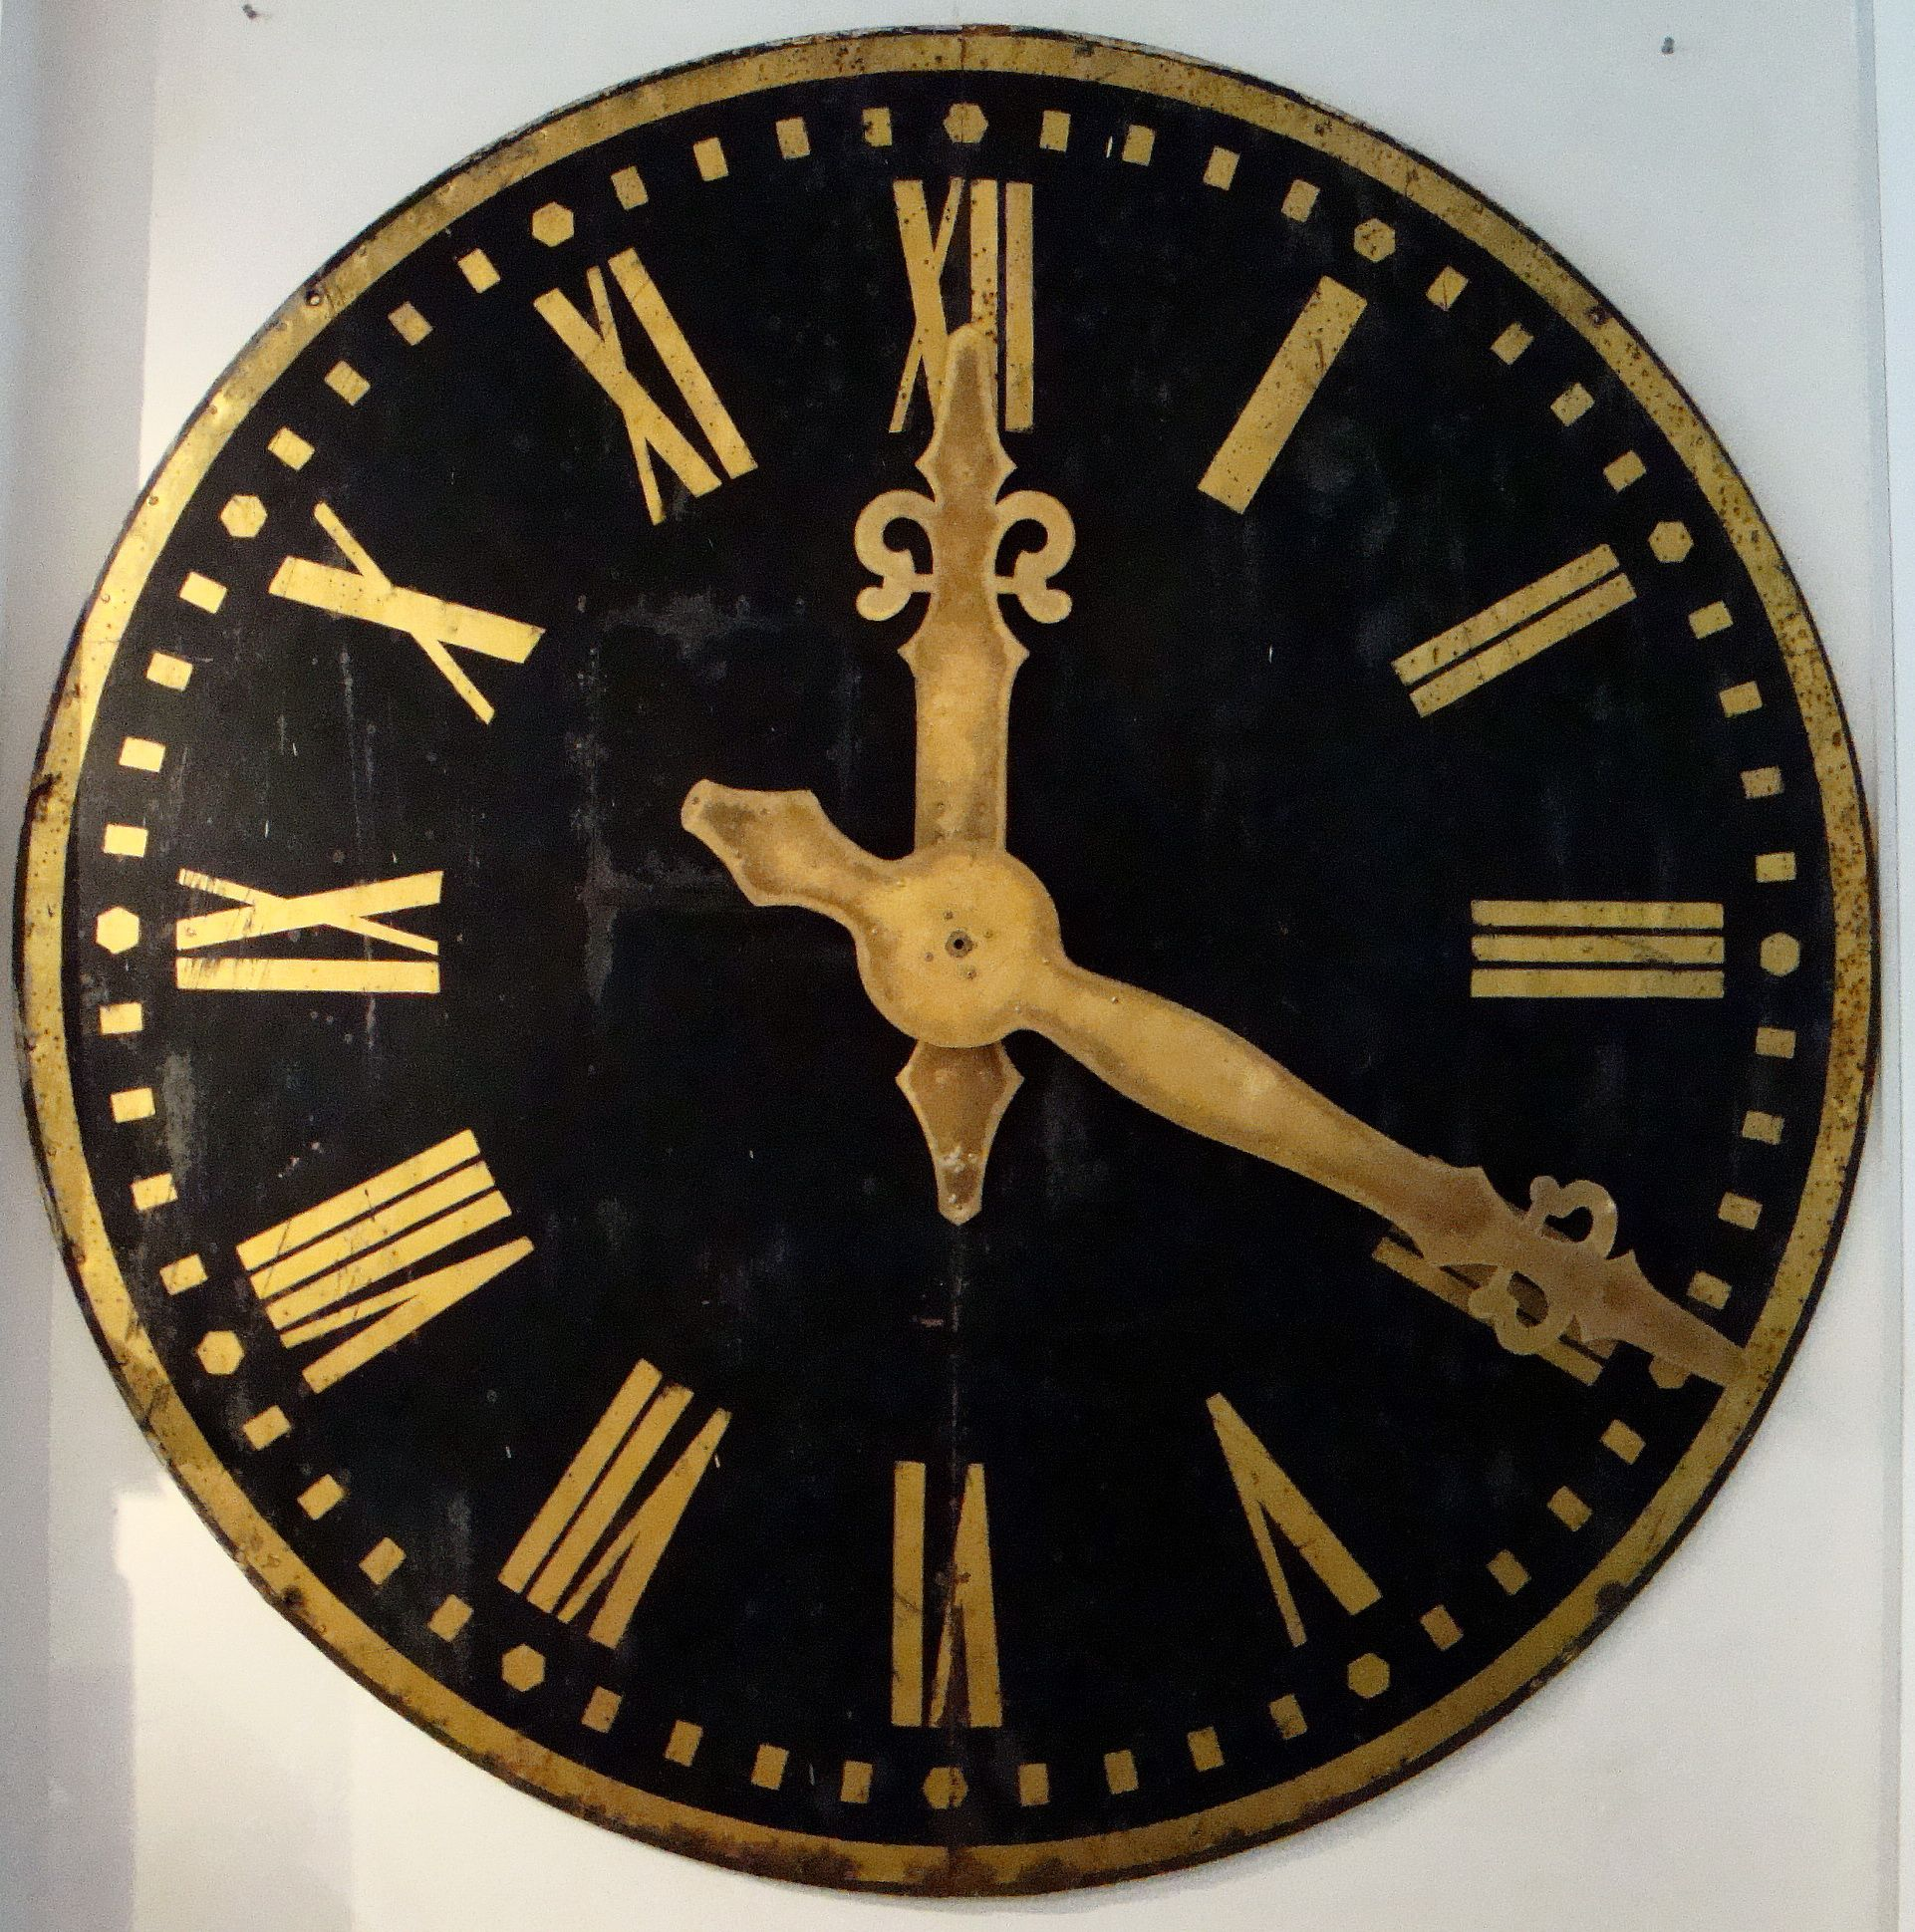 19th c French Tower Clock Face  www.appleyhoare.com